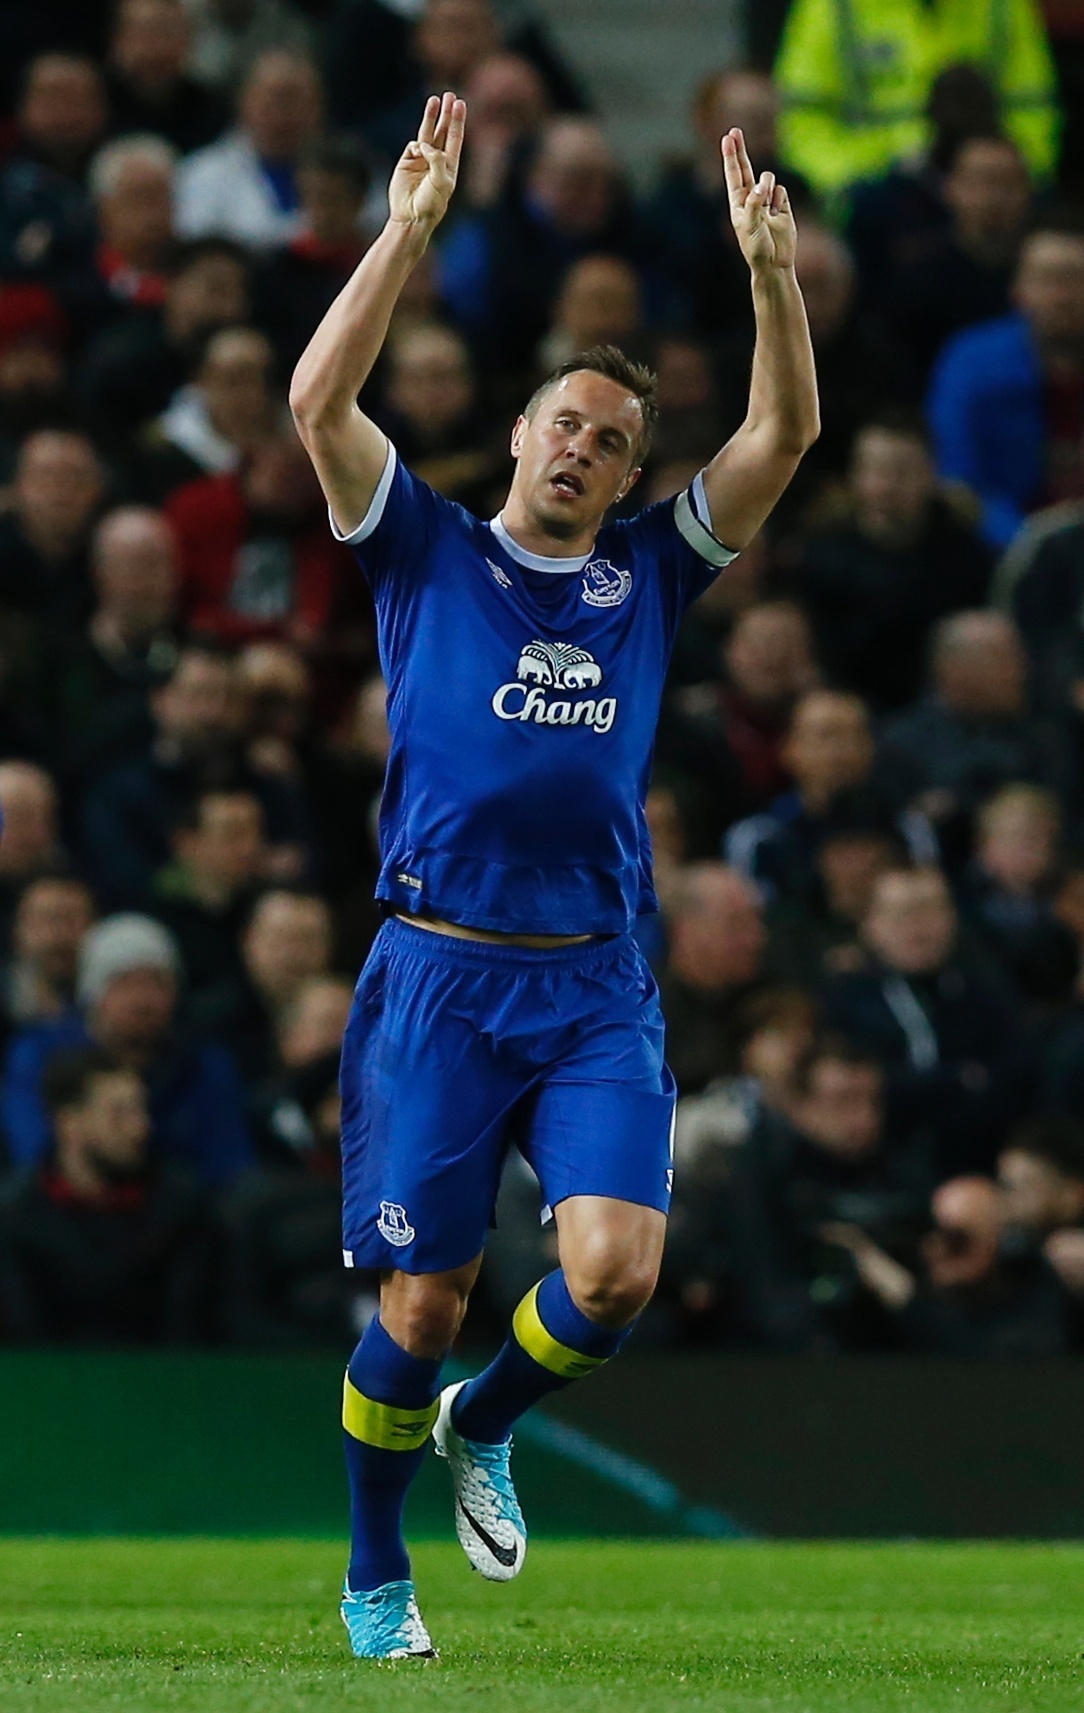 Phil Jagielka, do Everton, comemora seu gol contra o United